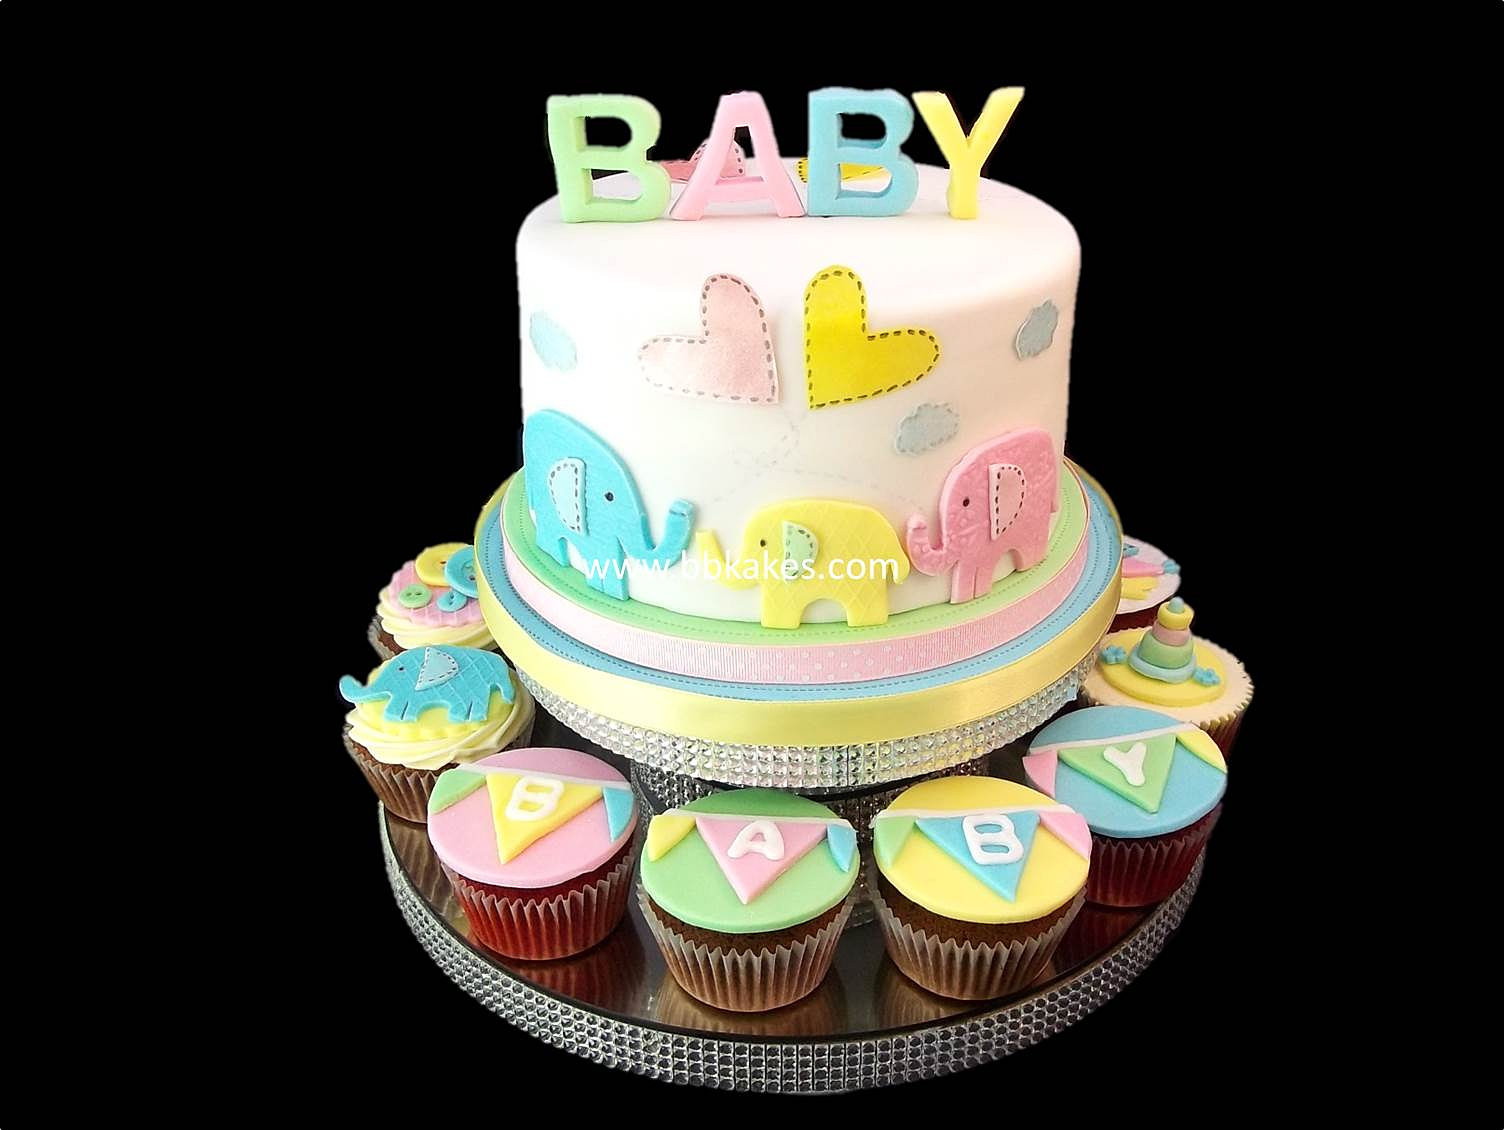 Unisex Baby Shower Cupcakes : Cakes, North London, Corporate Cakes and Cupcakes Unisex ...